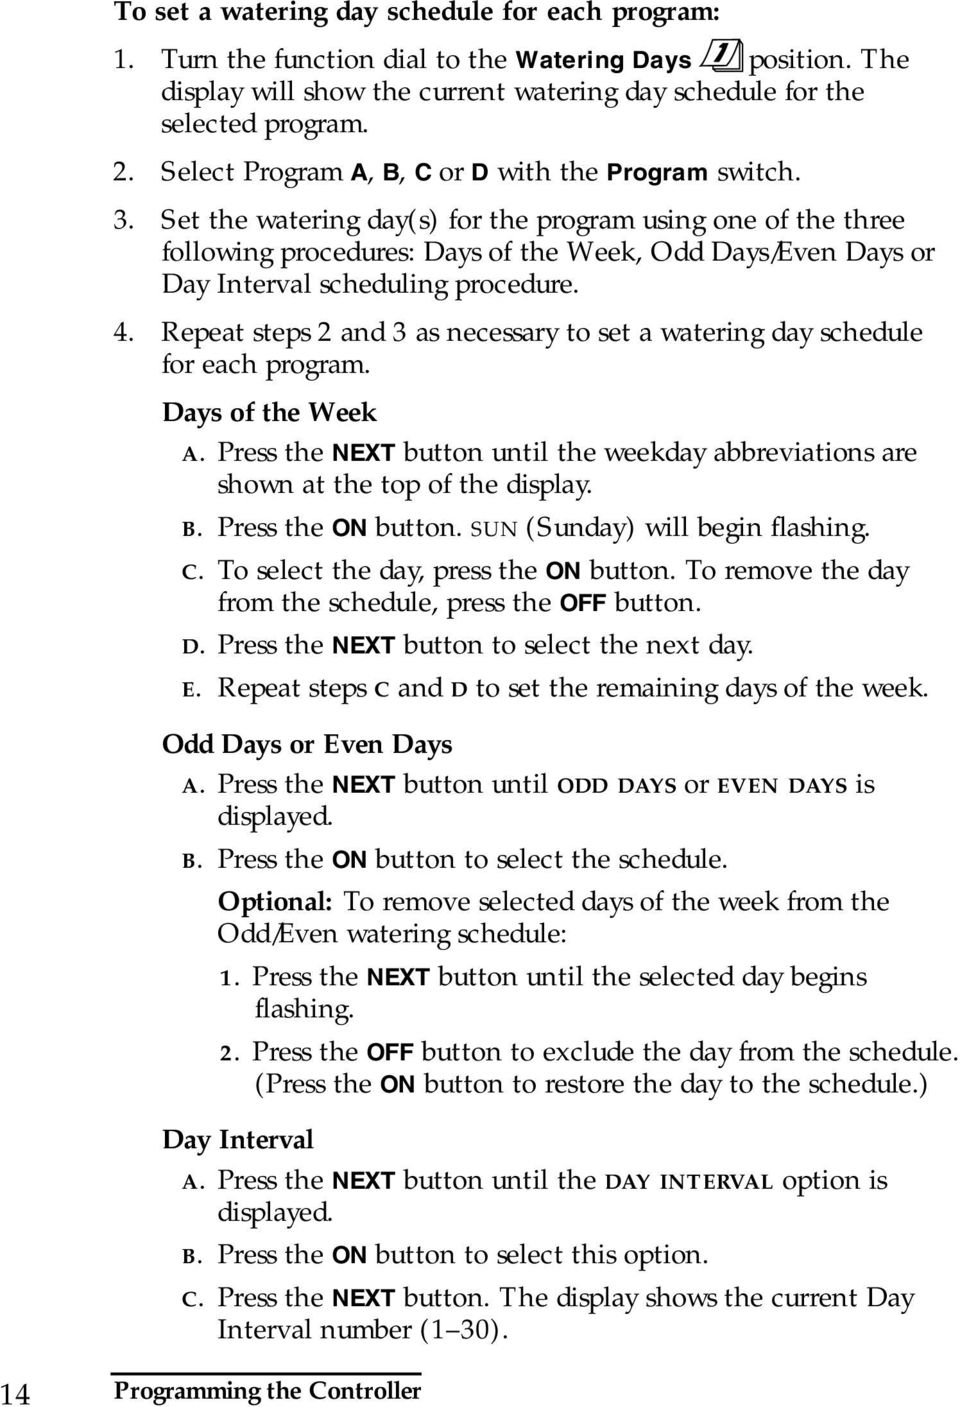 Set the watering day(s) for the program using one of the three following procedures: Days of the Week, Odd Days/Even Days or Day Interval scheduling procedure. 4.